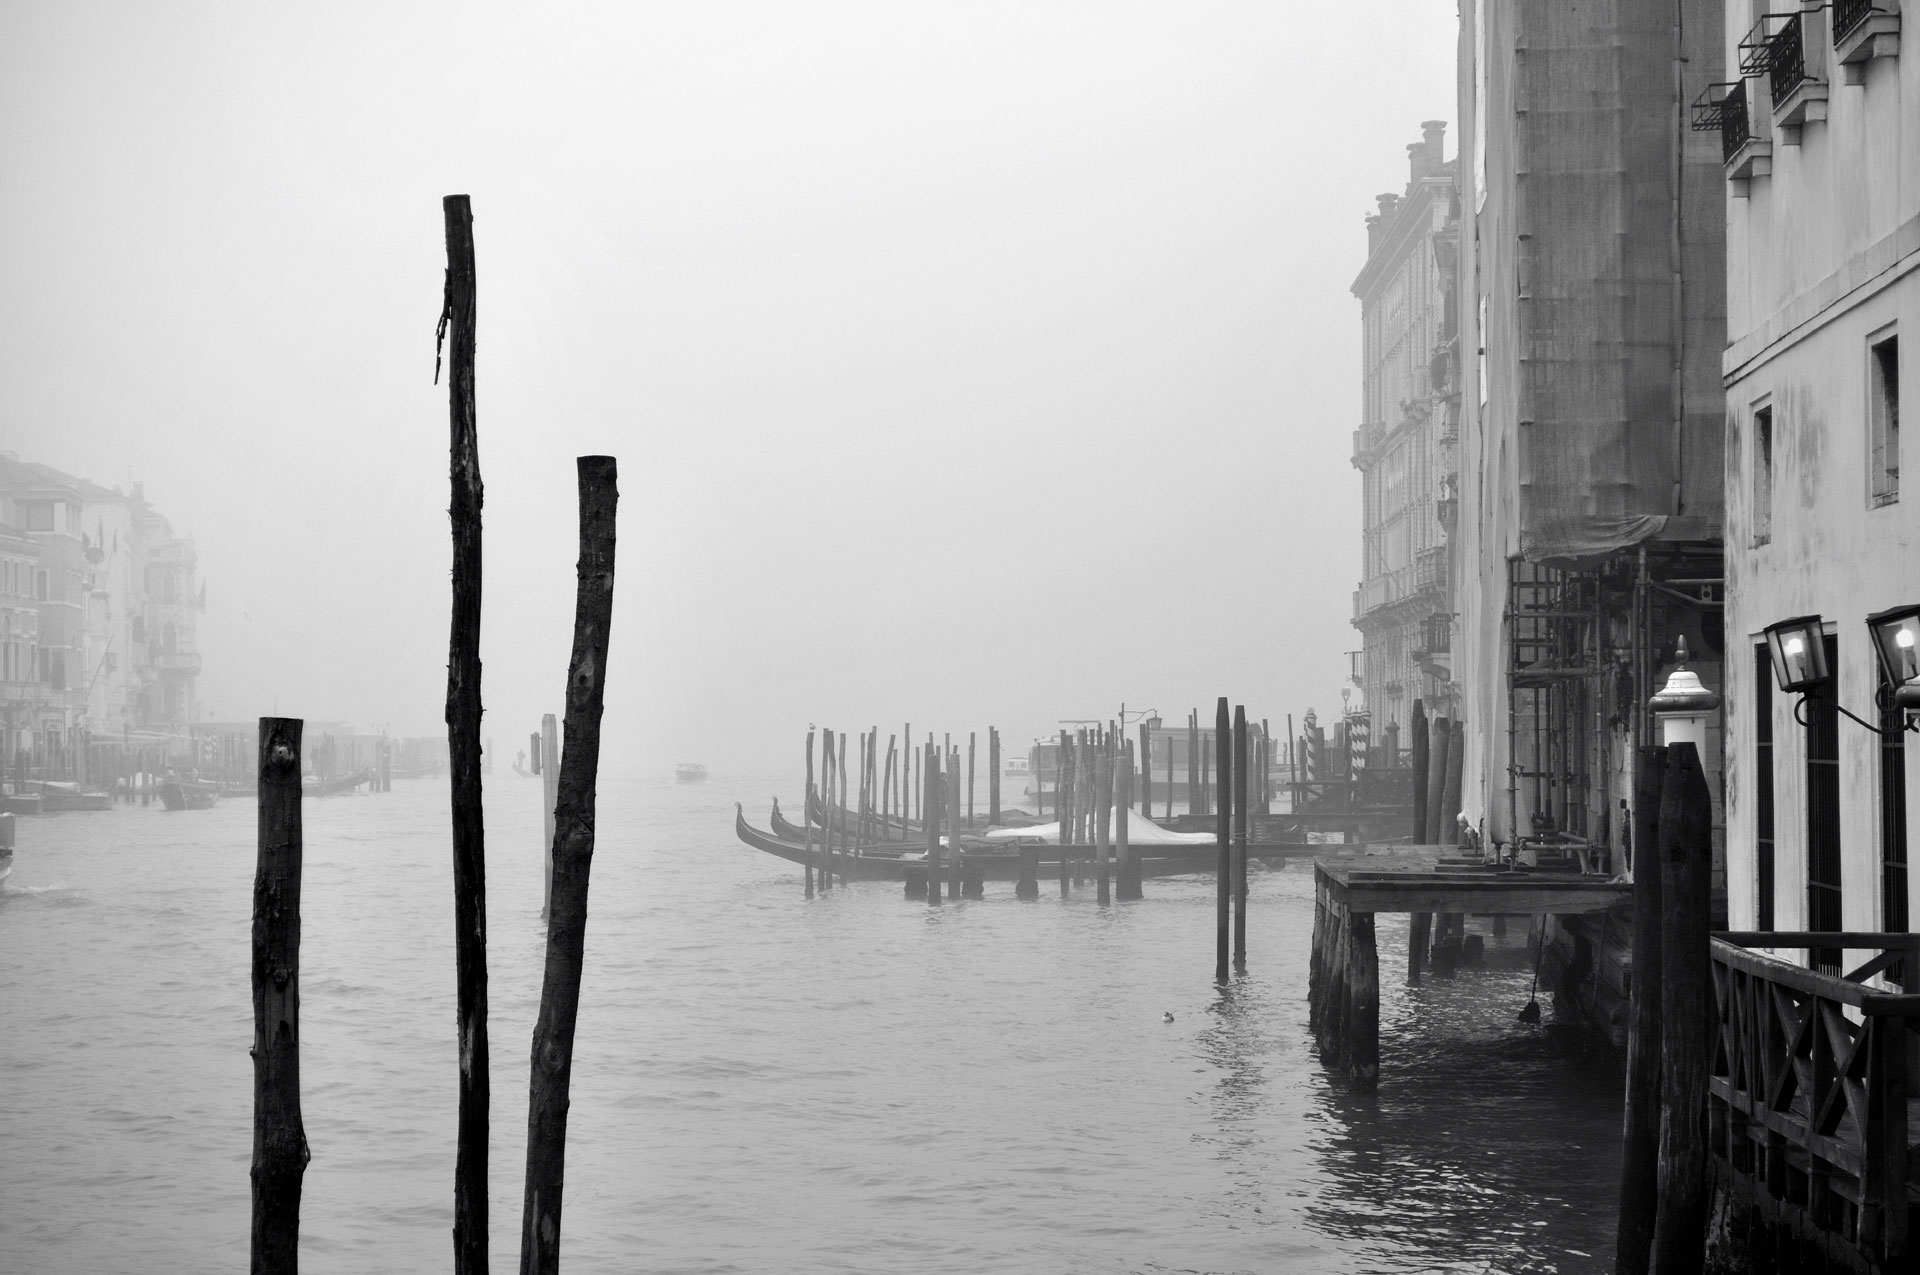 A Foggy Day in Venice